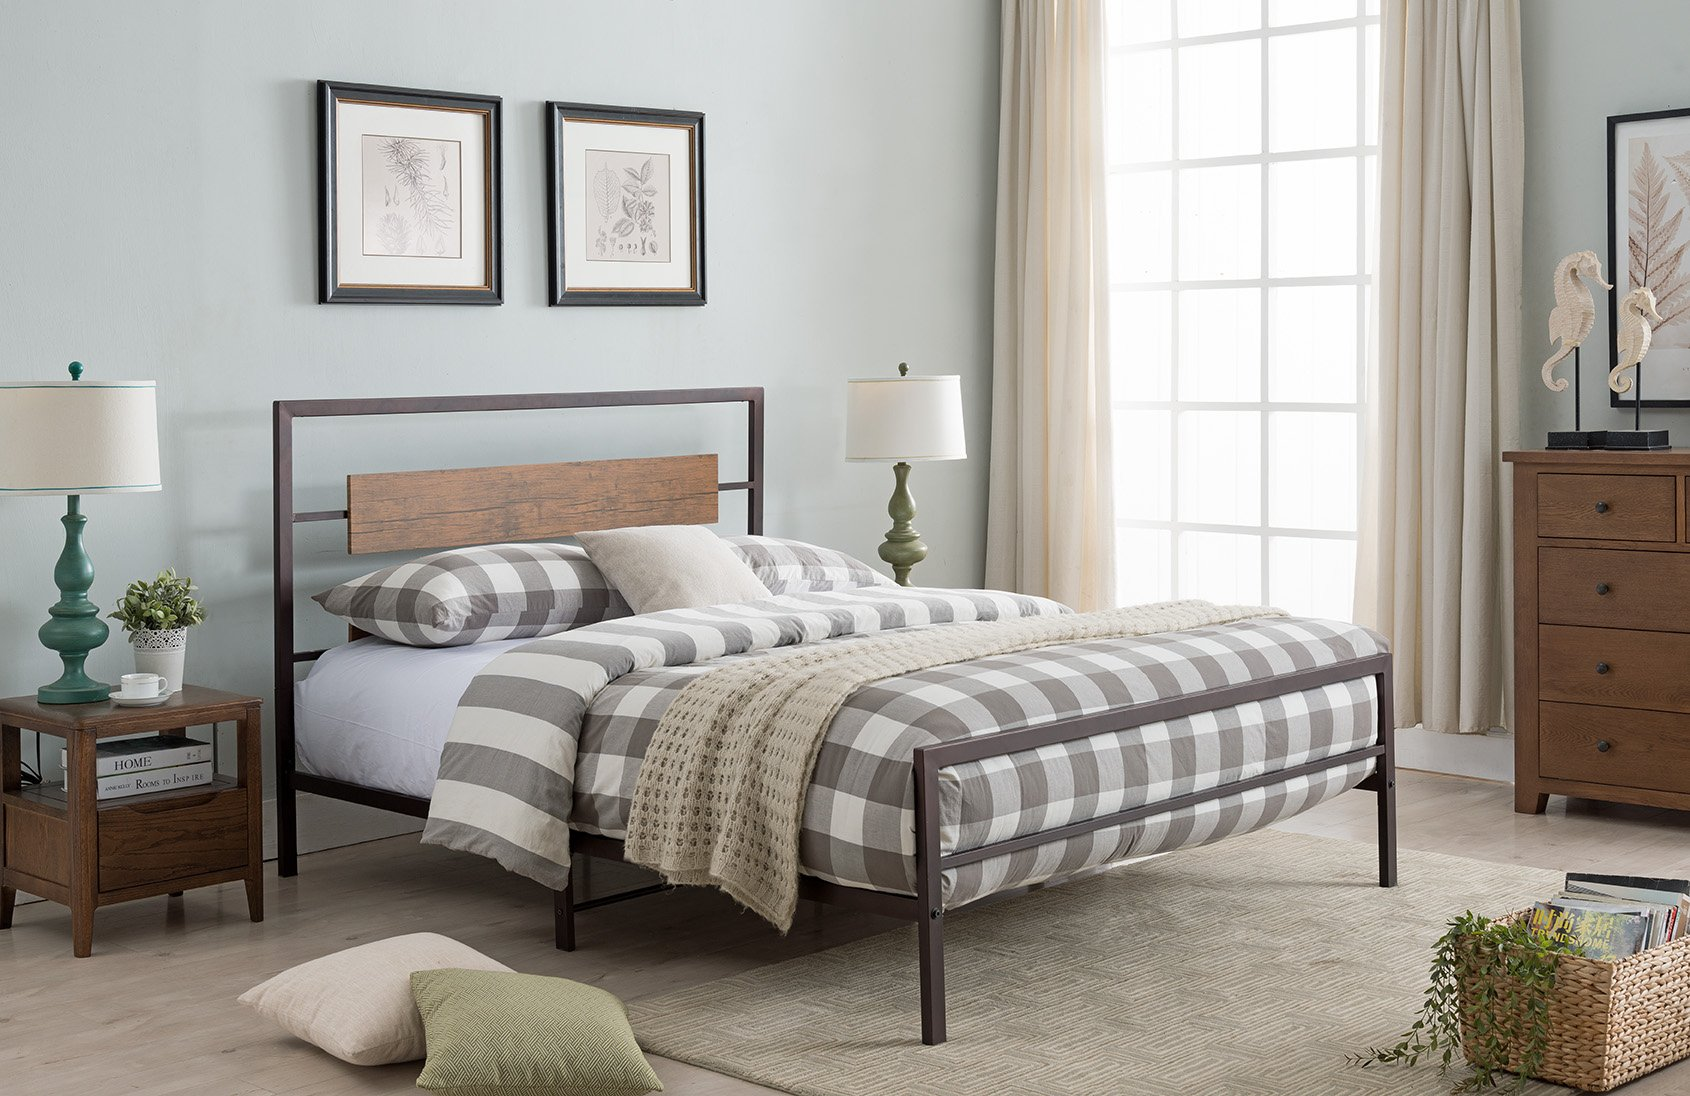 Kings Brand Furniture - Verona Pewter Metal/Walnut Wood Bed with Headboard & Footboard, King - Update your bedroom with the Verona Platform Bed, Headboard, Footboard, Rails, Slats & Center Support. This bed features a strong construction with slats that form a sturdy base to keep your mattress in good shape for longer. Featuring a metal frame with a rectangular reclaimed wood look. - bedroom-furniture, bed-frames, bedroom - 811VEYu5ybL -